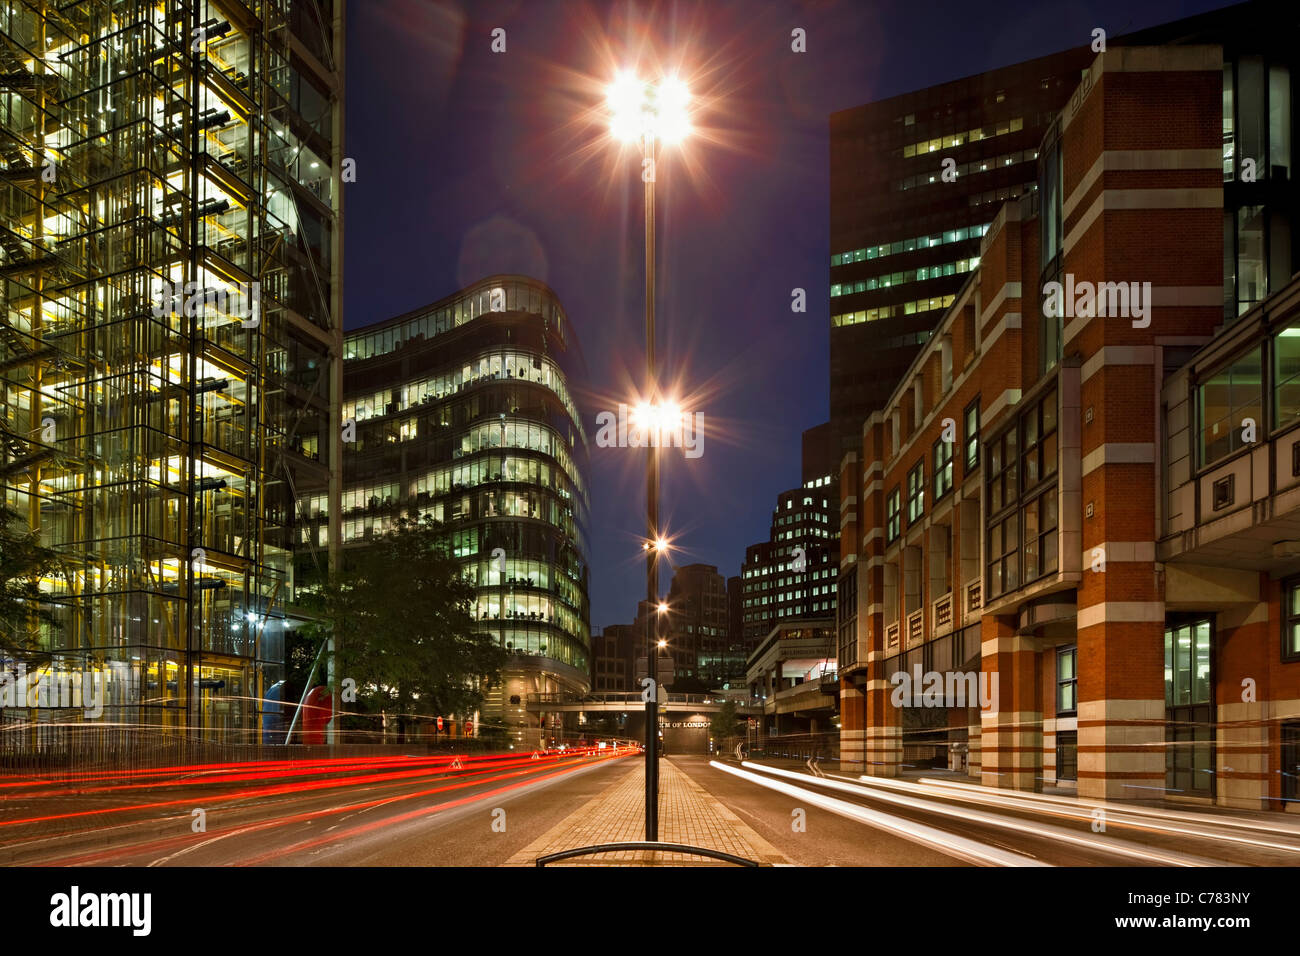 London Wall offices in the City of London at night. - Stock Image